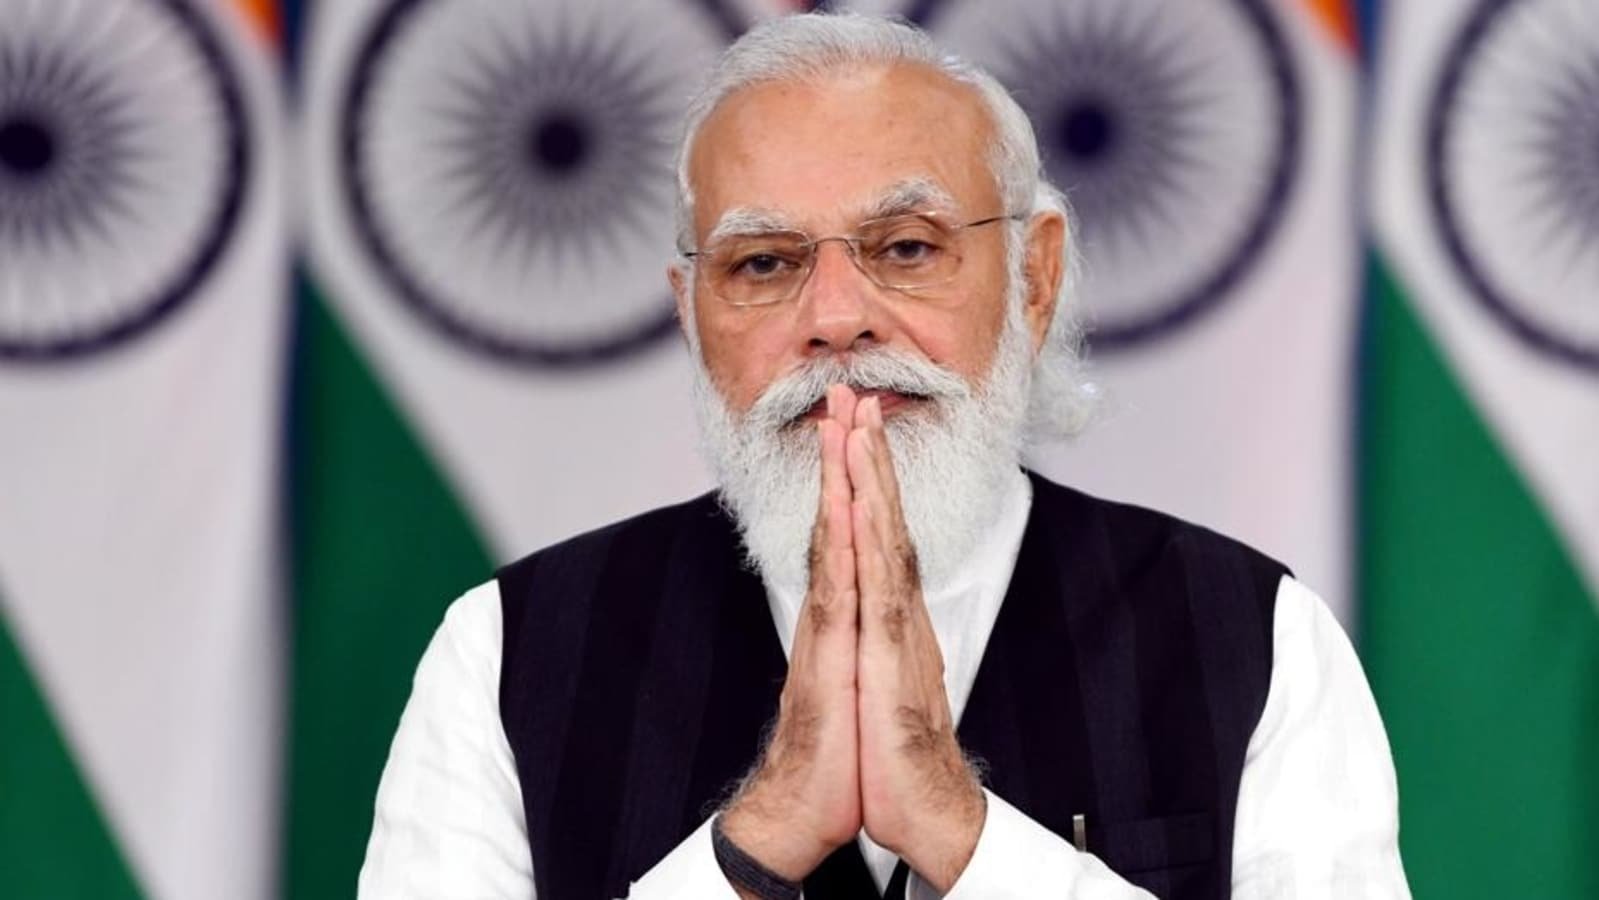 Prime Minister of India Launched Indian Space Association (ISpA) for Coordination